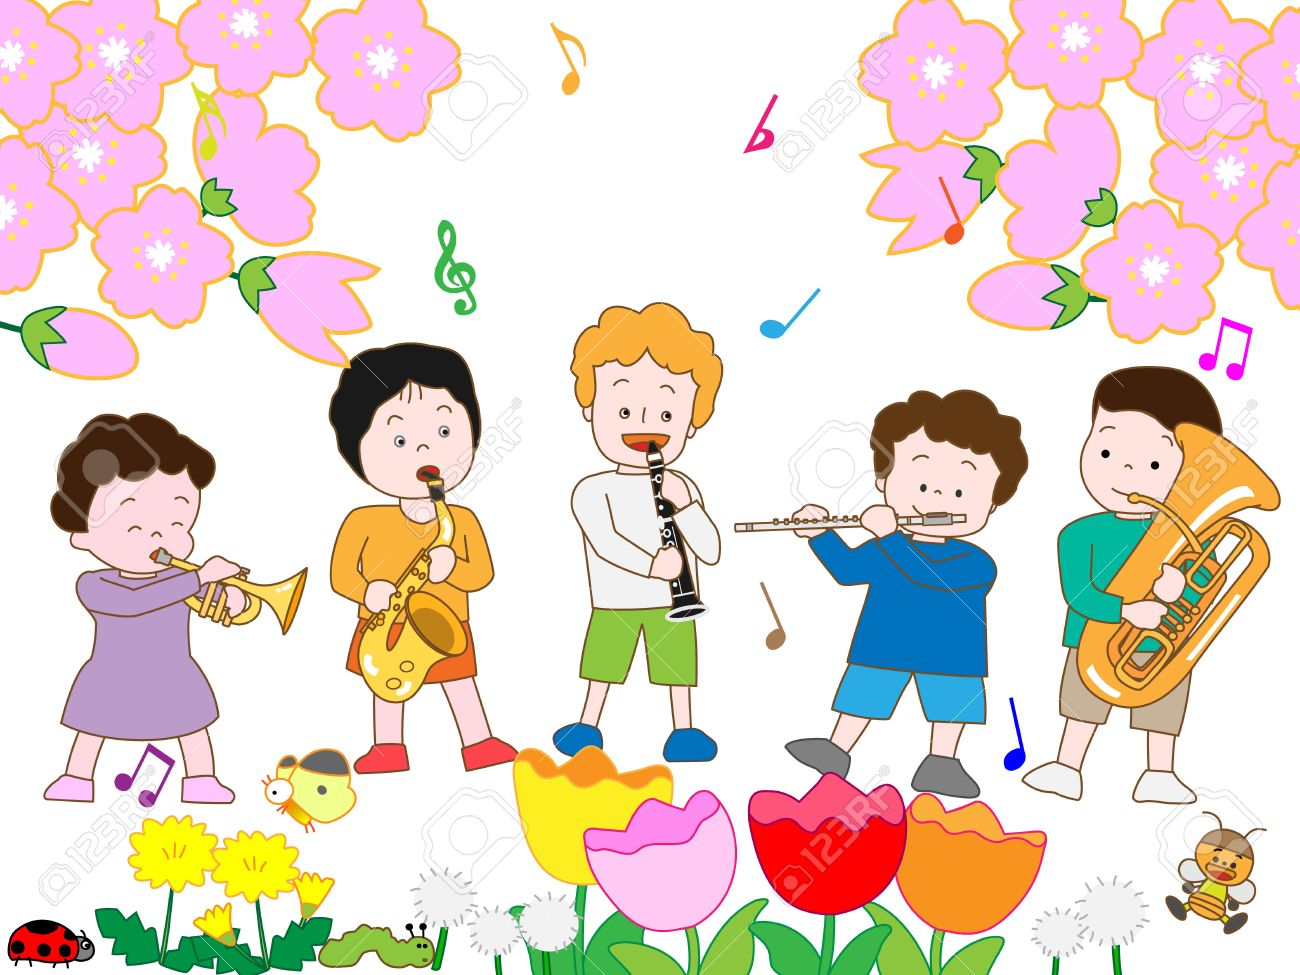 Spring concert clipart 7 » Clipart Station.